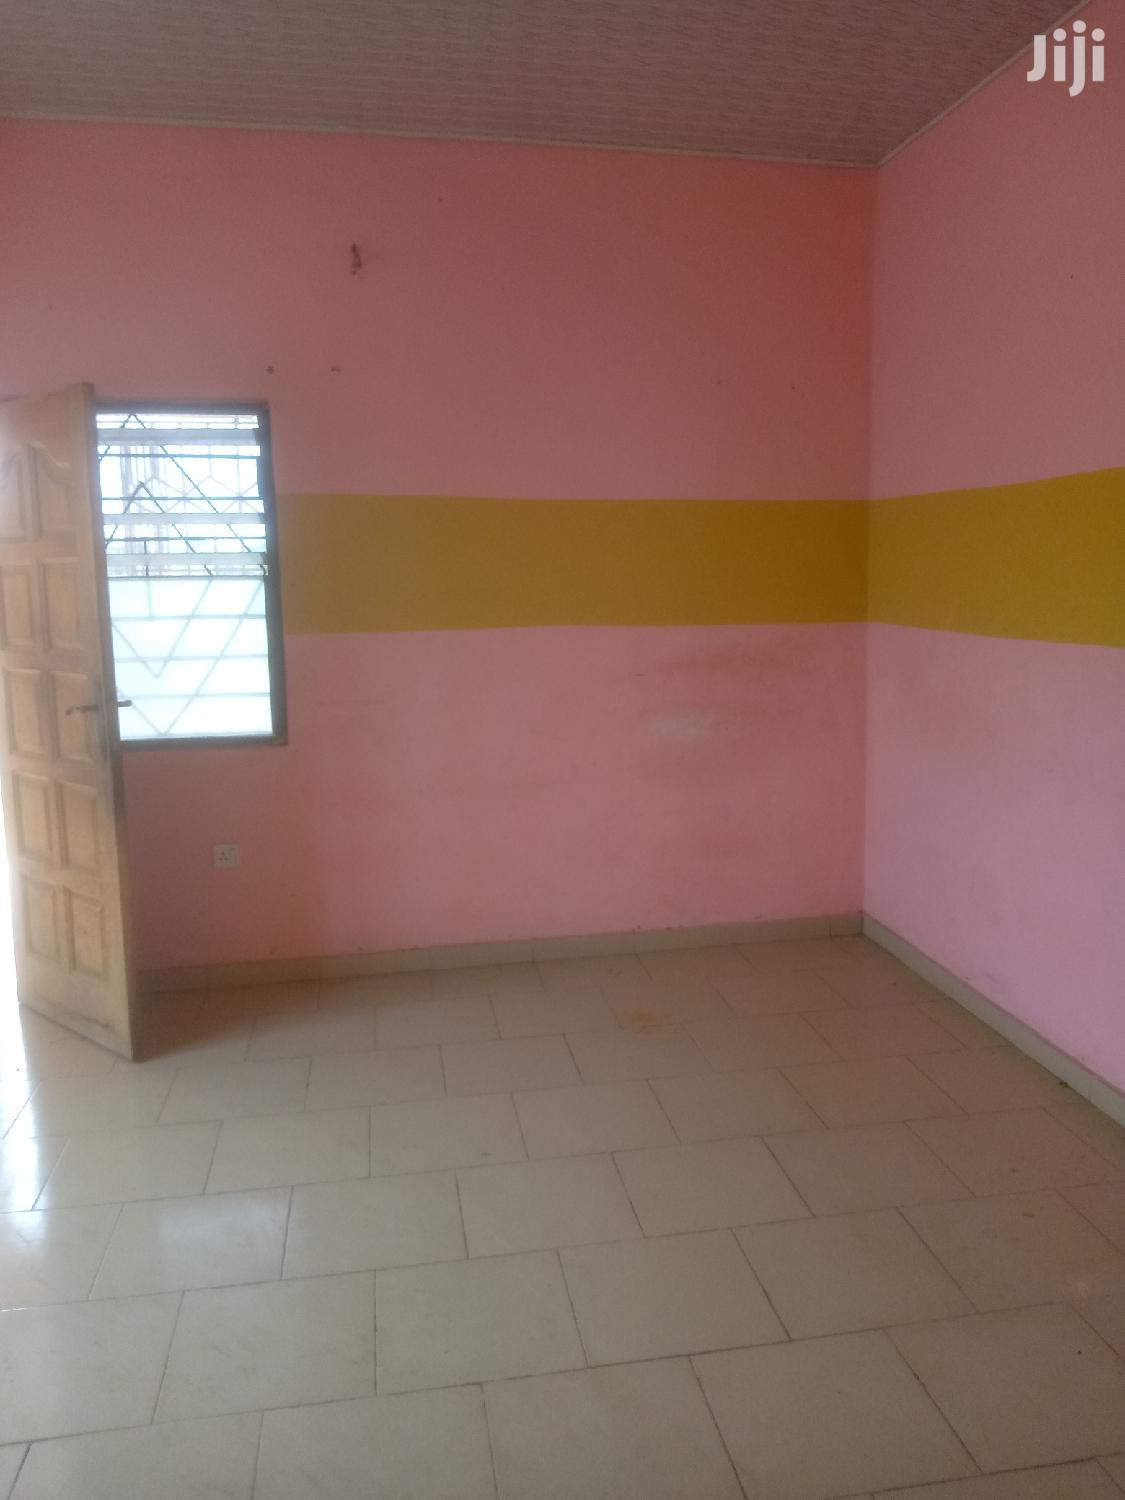 Chamber and Hall Self Contain for Rent at Kasoa Roman Area | Houses & Apartments For Rent for sale in Gomoa East, Central Region, Ghana